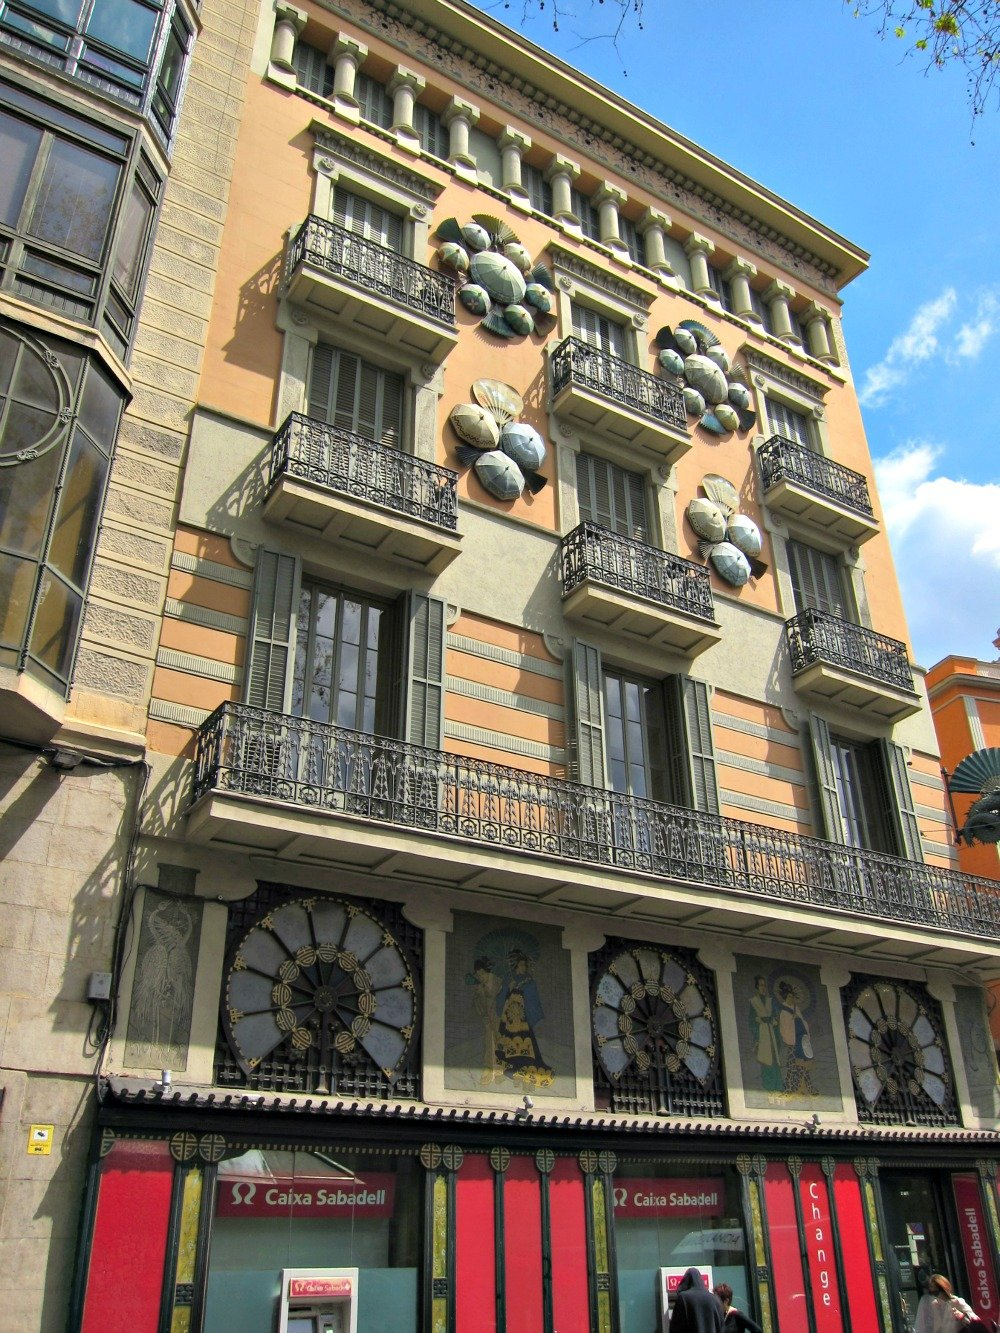 Decorative Buildings in Barcelona.  This one has round semi-circular additions.